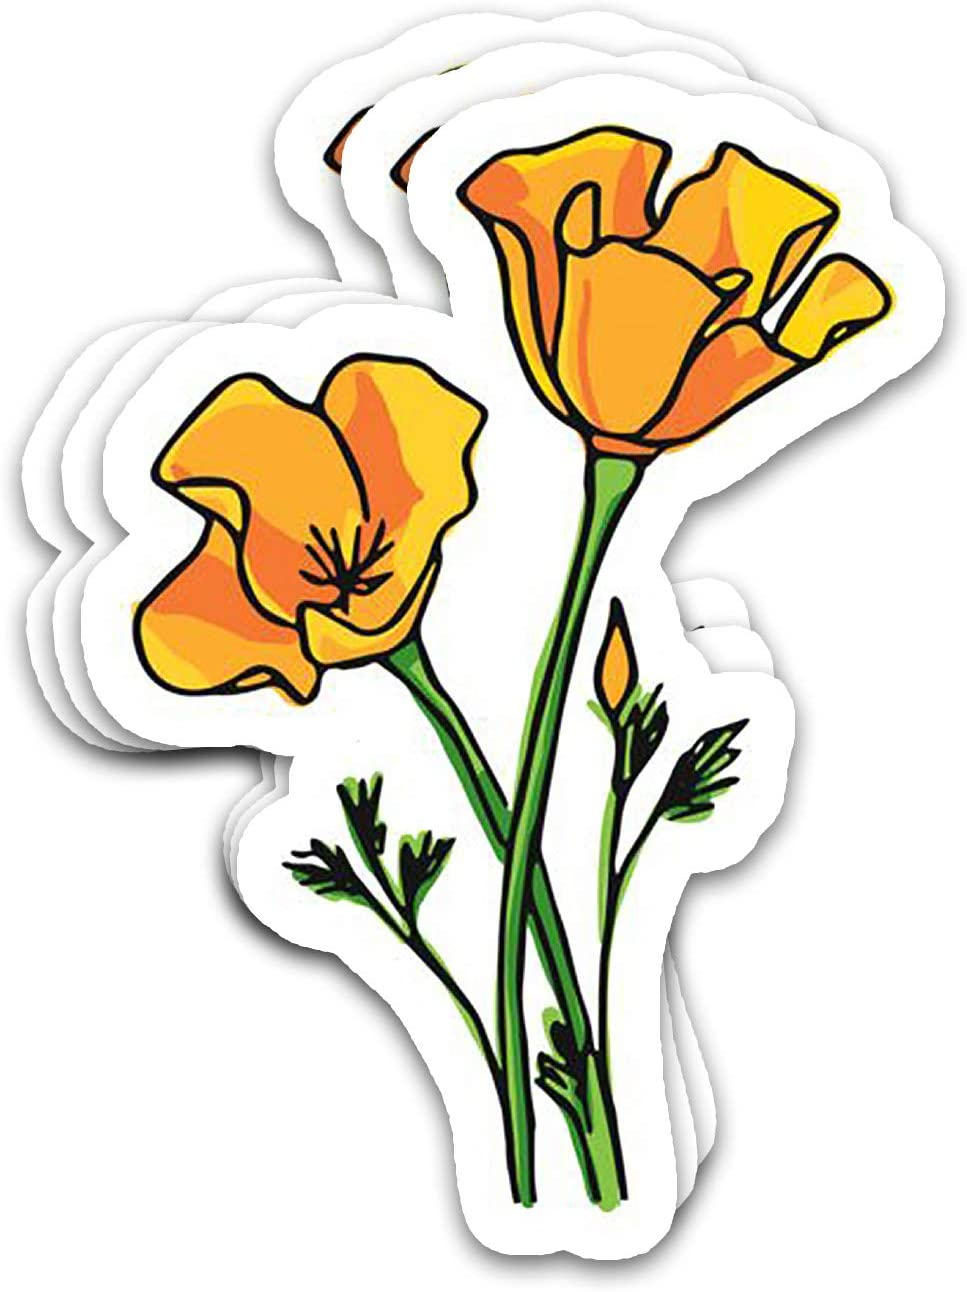 SNOWIX California Vintage Eschscholzia, US State Golden Poppies Flowers Awesome Gift Ideas Stickers for Laptops Tumblers Books Luggages Cases Pack 3x4 in Vinyl 3pcs/Pack